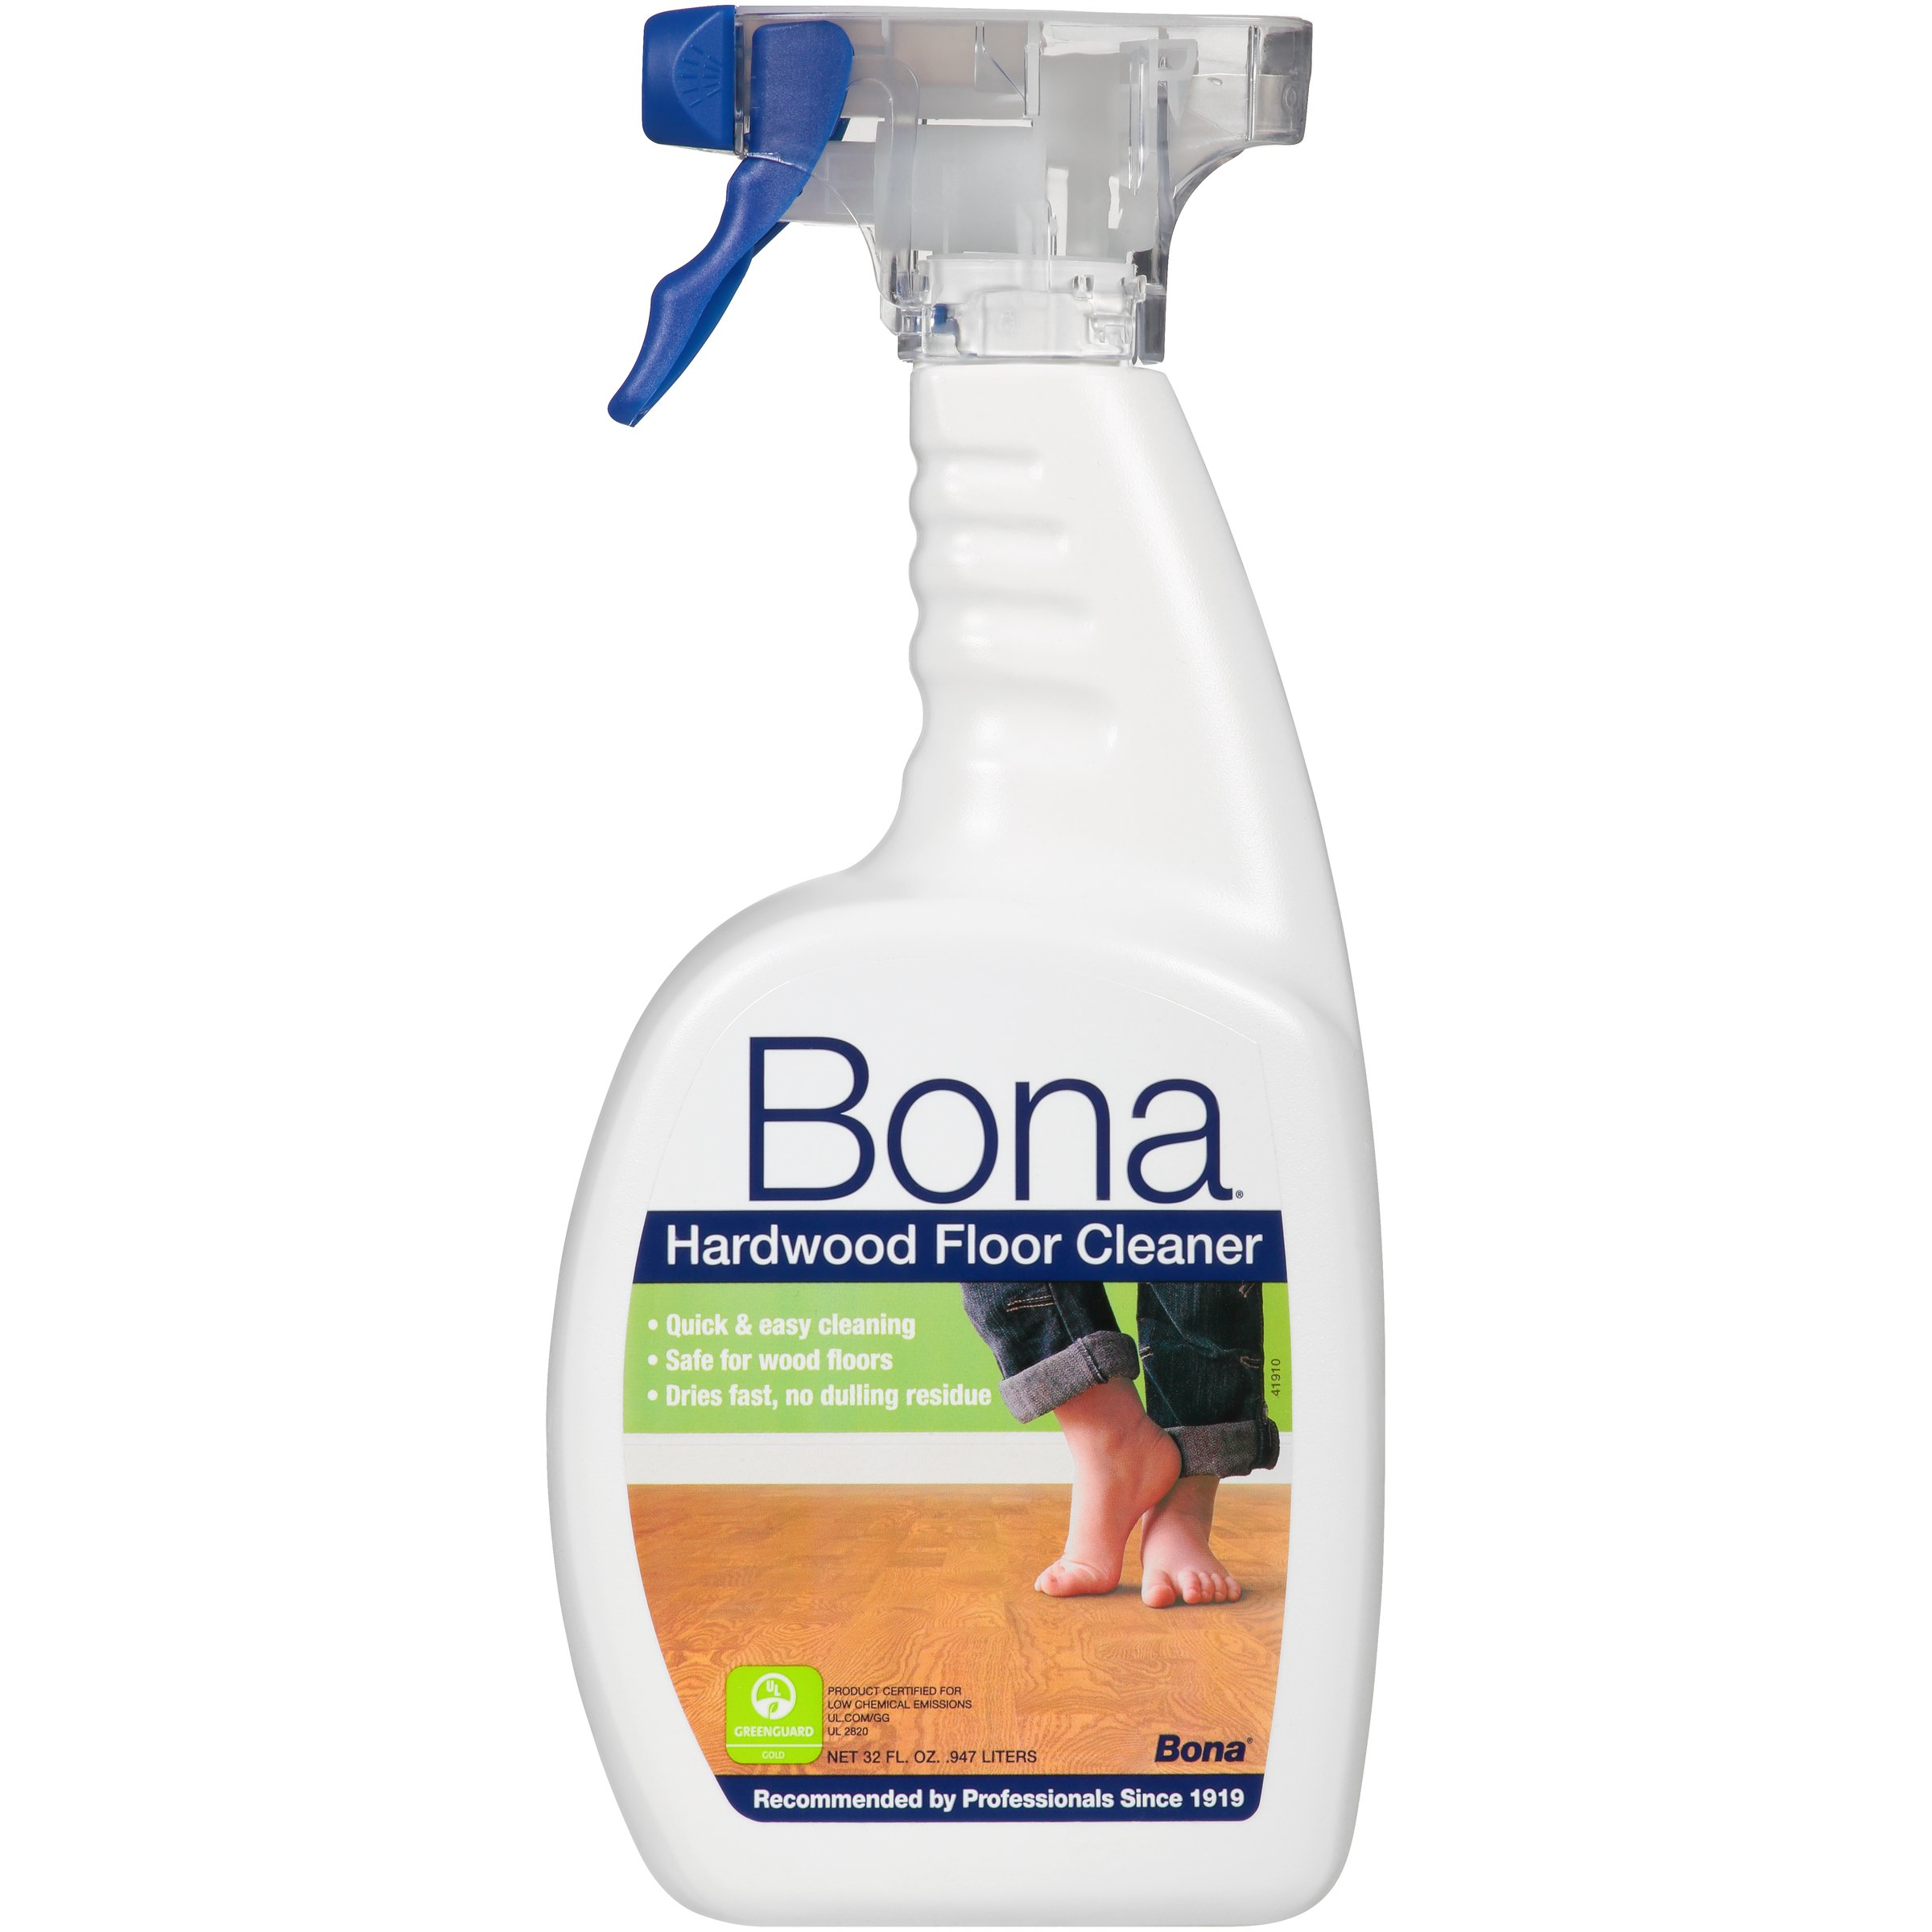 Amazoncom Bona Stone Tile Laminate Floor Cleaner Spray Oz - Clean tile floors without residue